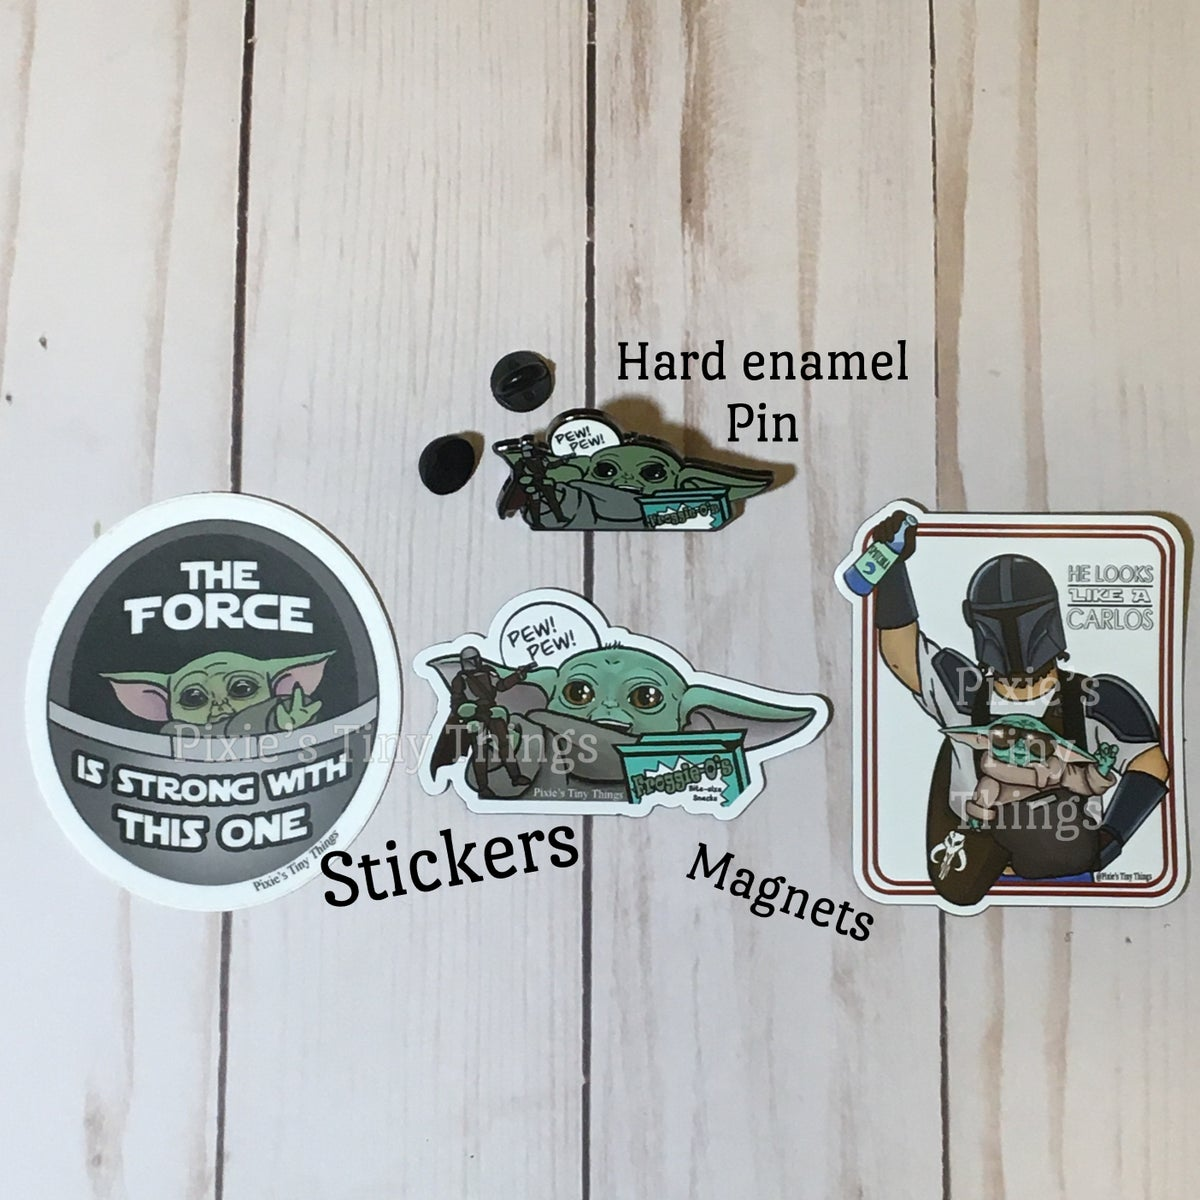 Image of The Child Stickers, Patches and Magnets